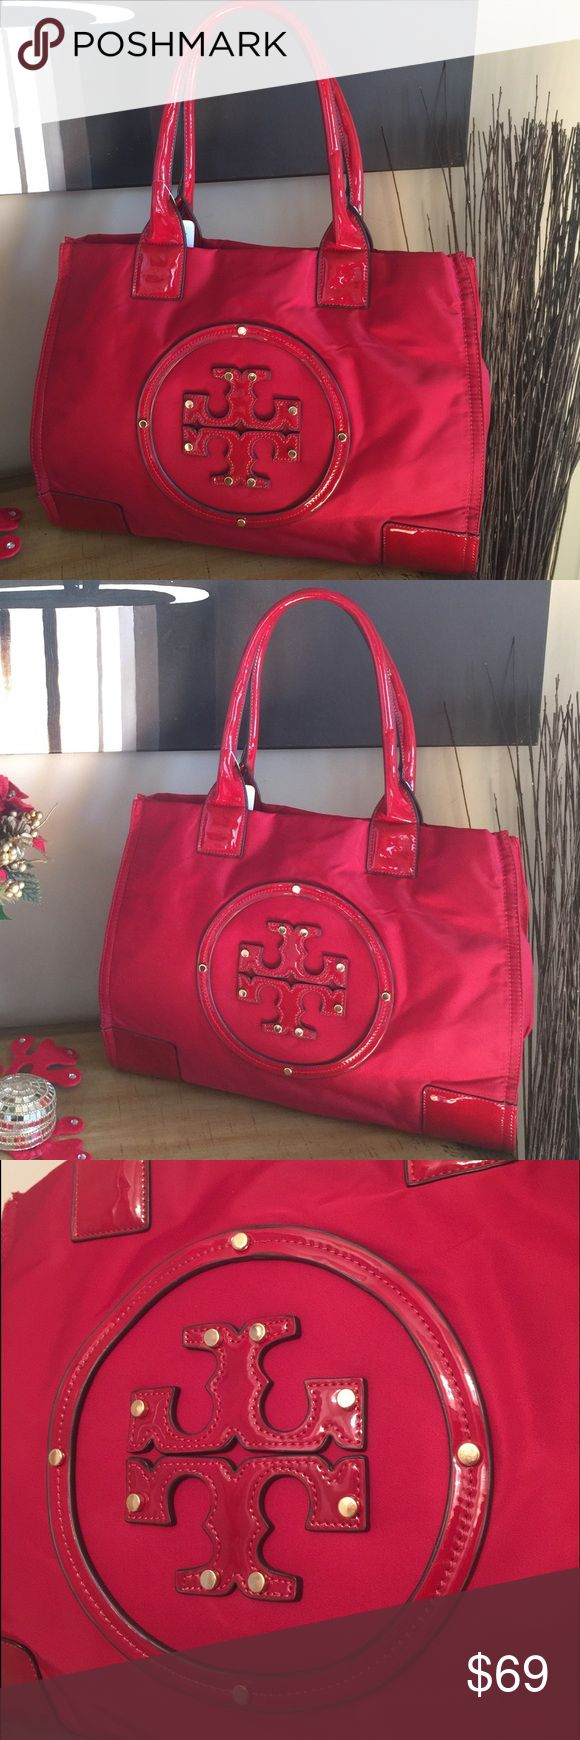 BNWT RED HANDBAG W LOGO-PRICE IS FINAL!NO OFFERS🔕 BRAND NEW GREAT QUALITY NO BRAND BUT VERY SIMILAR TO BRAND NAME - ELLA STYLE. HIGH QUALITY NYLON AND LEATHER. Lots of space. THIS BAG IS BEAUTIFUL AND IS MADE WITH EXCELLENT MATERIALS - I am NOT going to take offers on it. THE PRICE IS FINAL!!!! Please don't send more offers. THANK YOU 😊 TB Bags Shoulder Bags